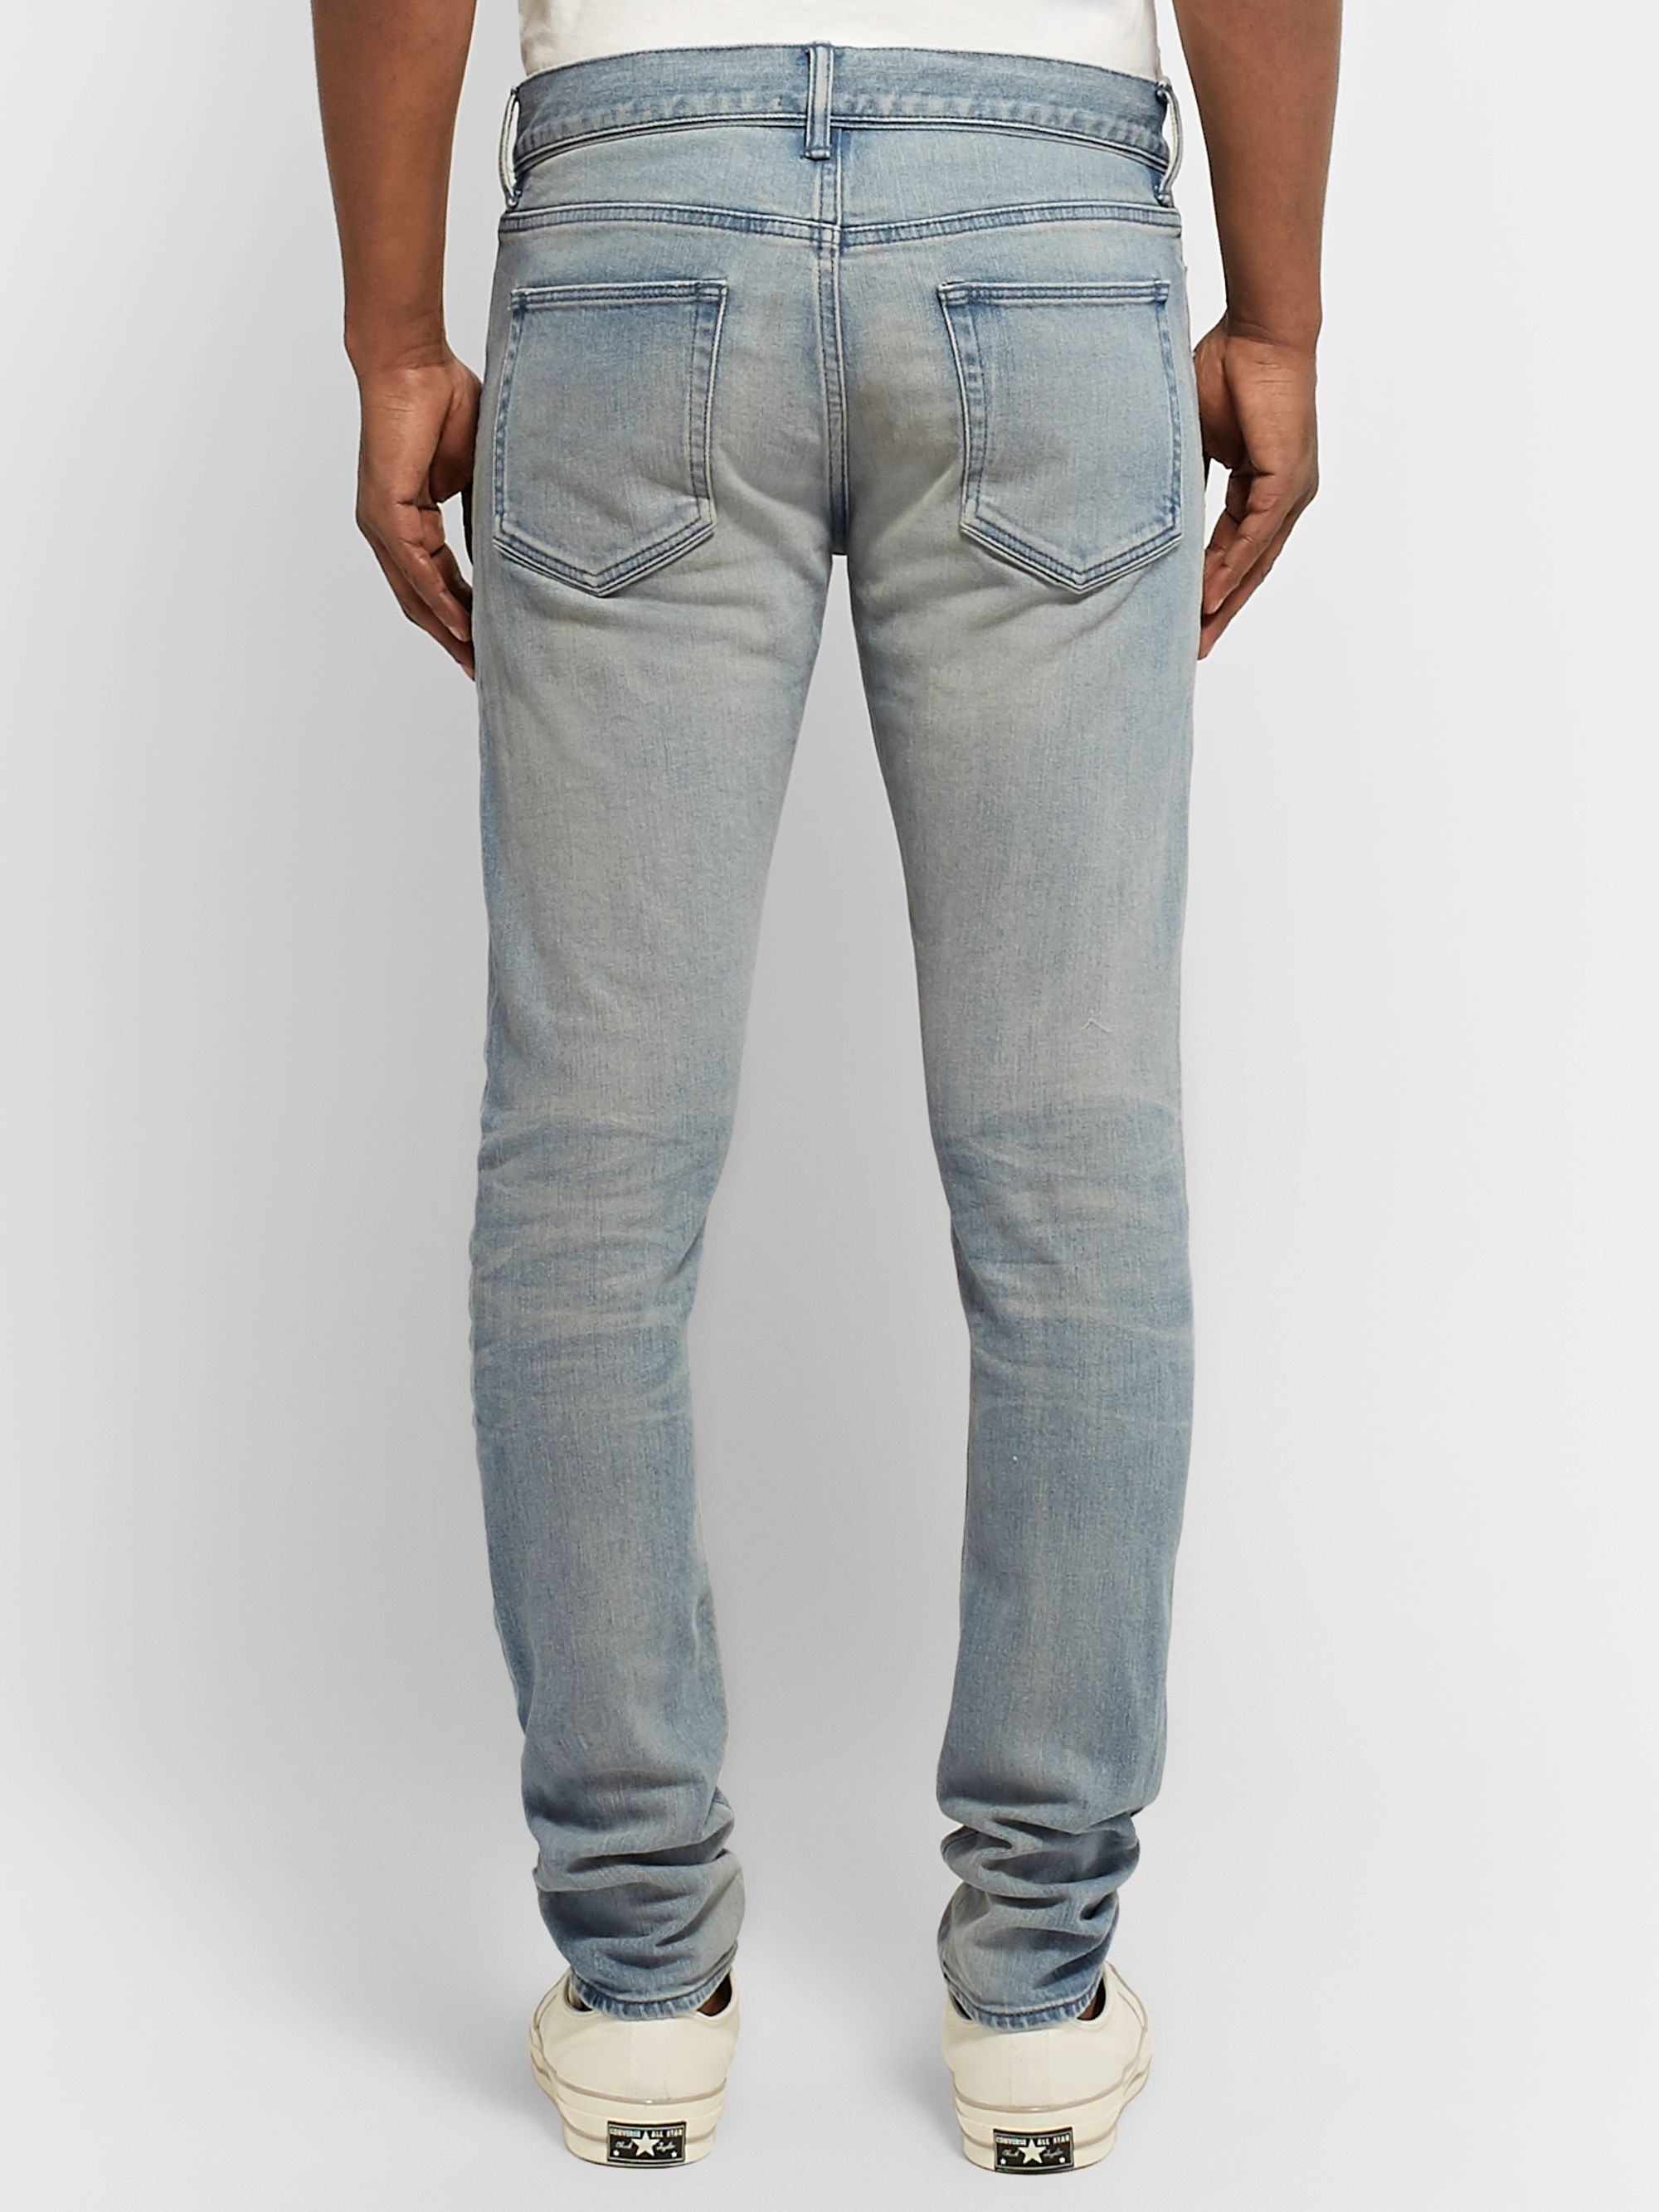 John Elliott The Cast 2 Slim-Fit Washed-Denim Jeans